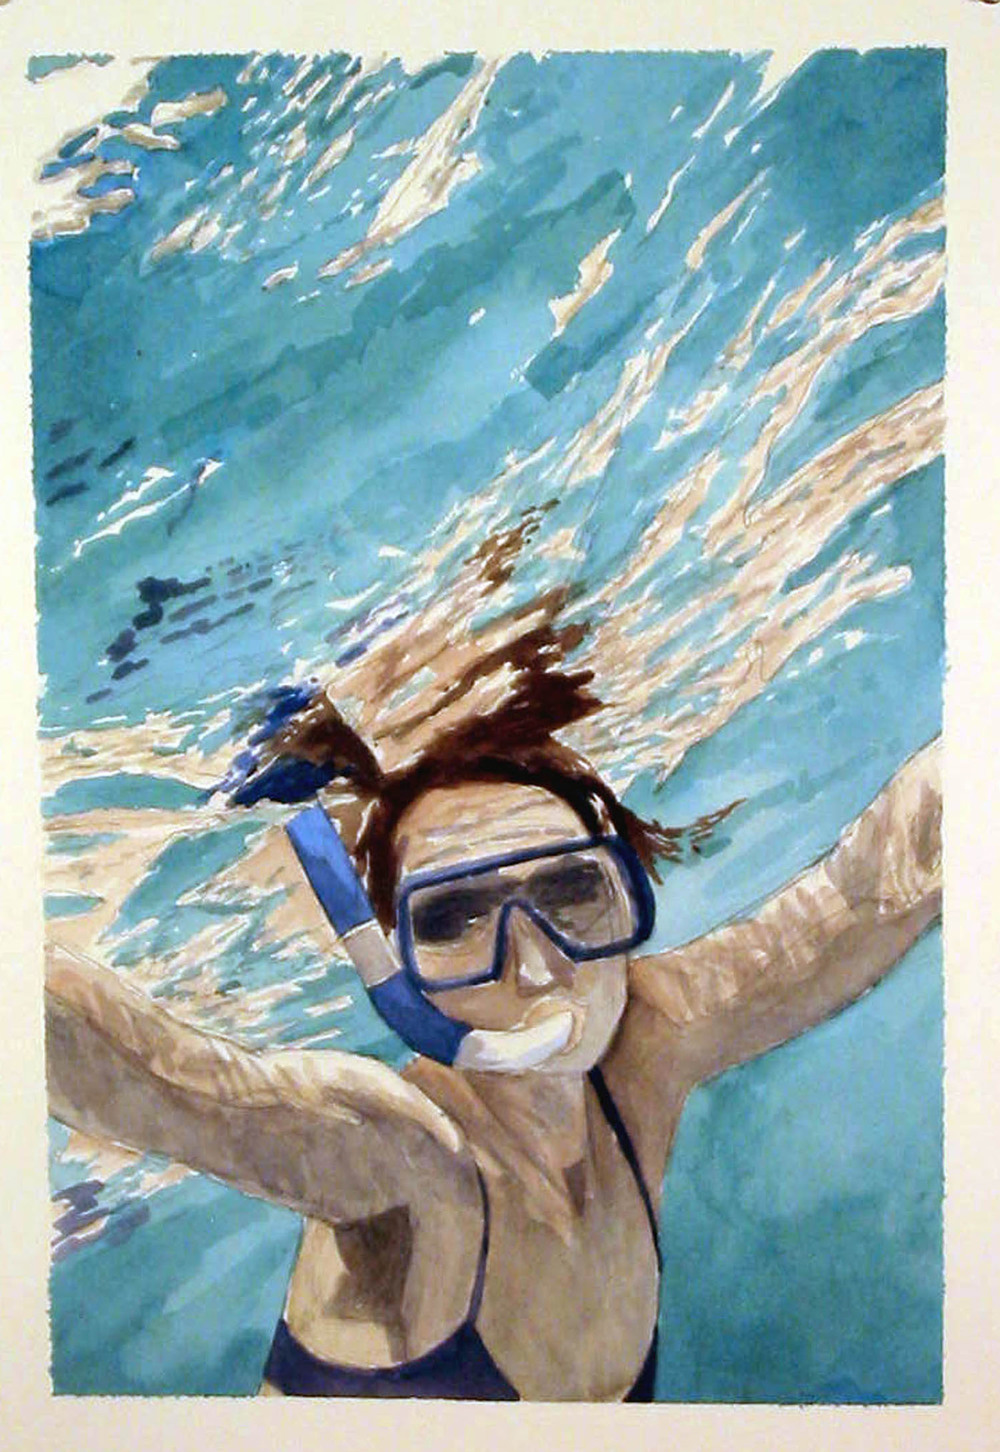 Ramona Snorkeling, 2006, watercolor, 20 x 14 in.